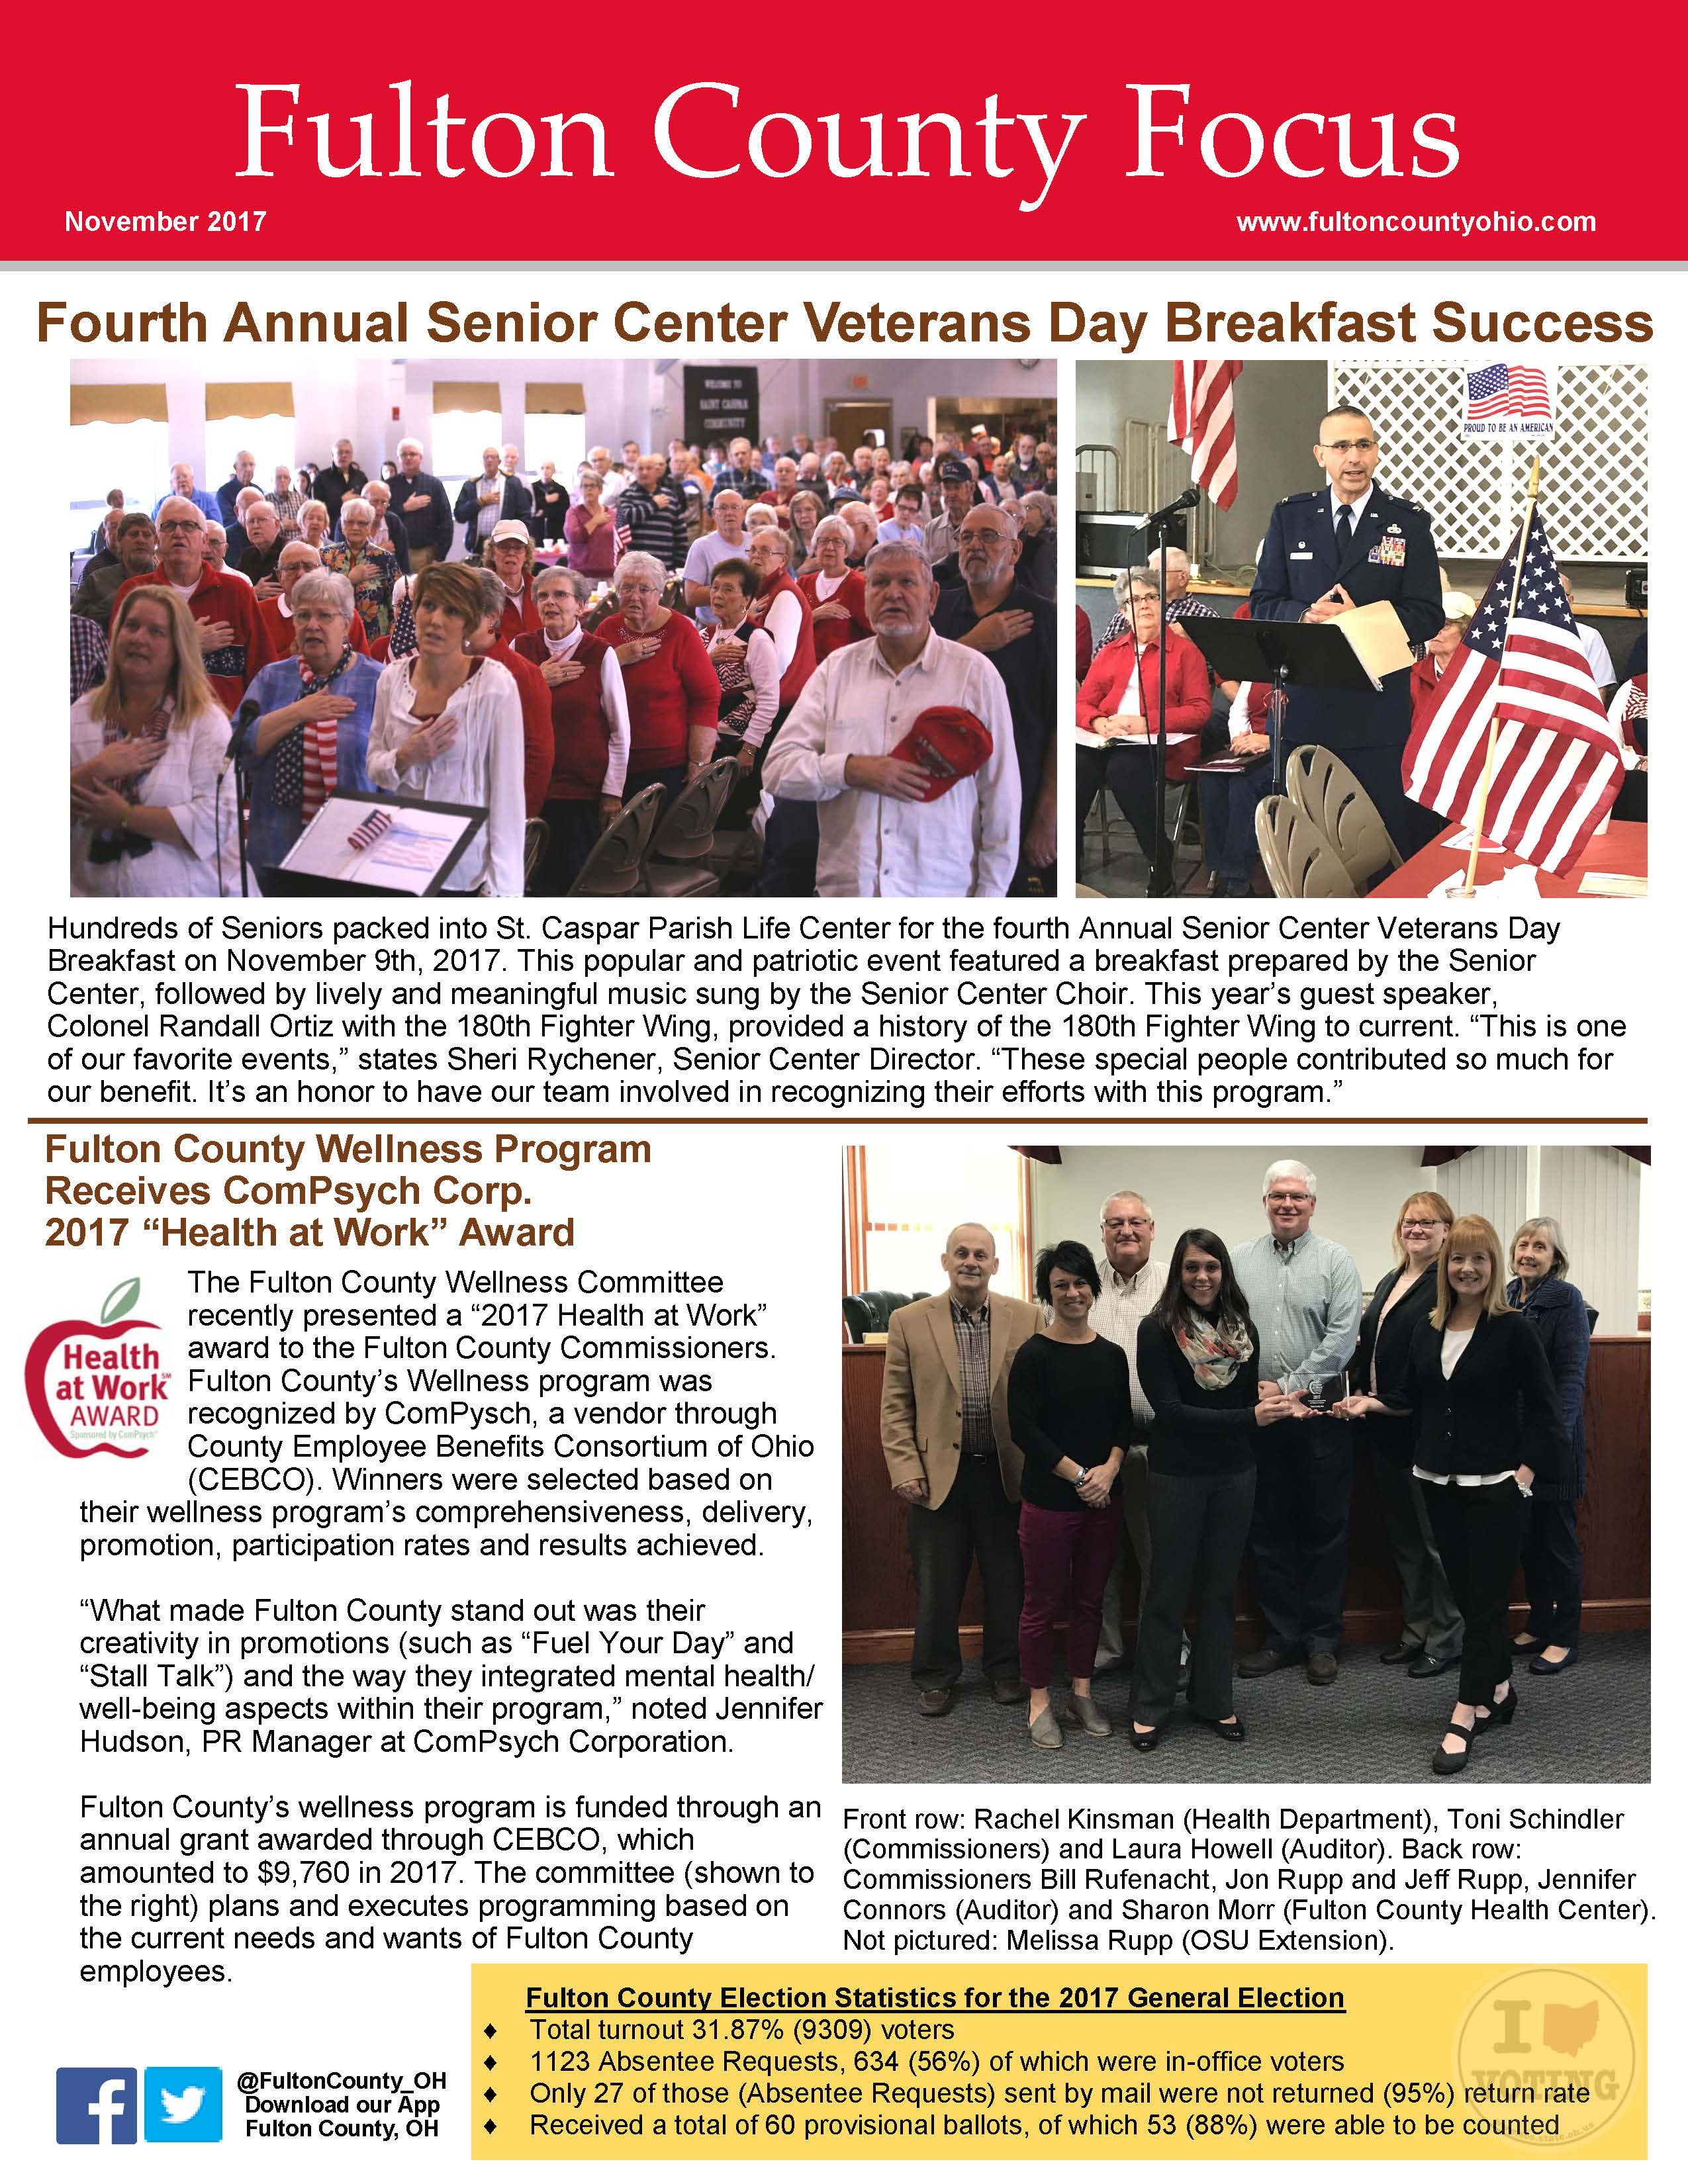 Fulton County Focus November 2017